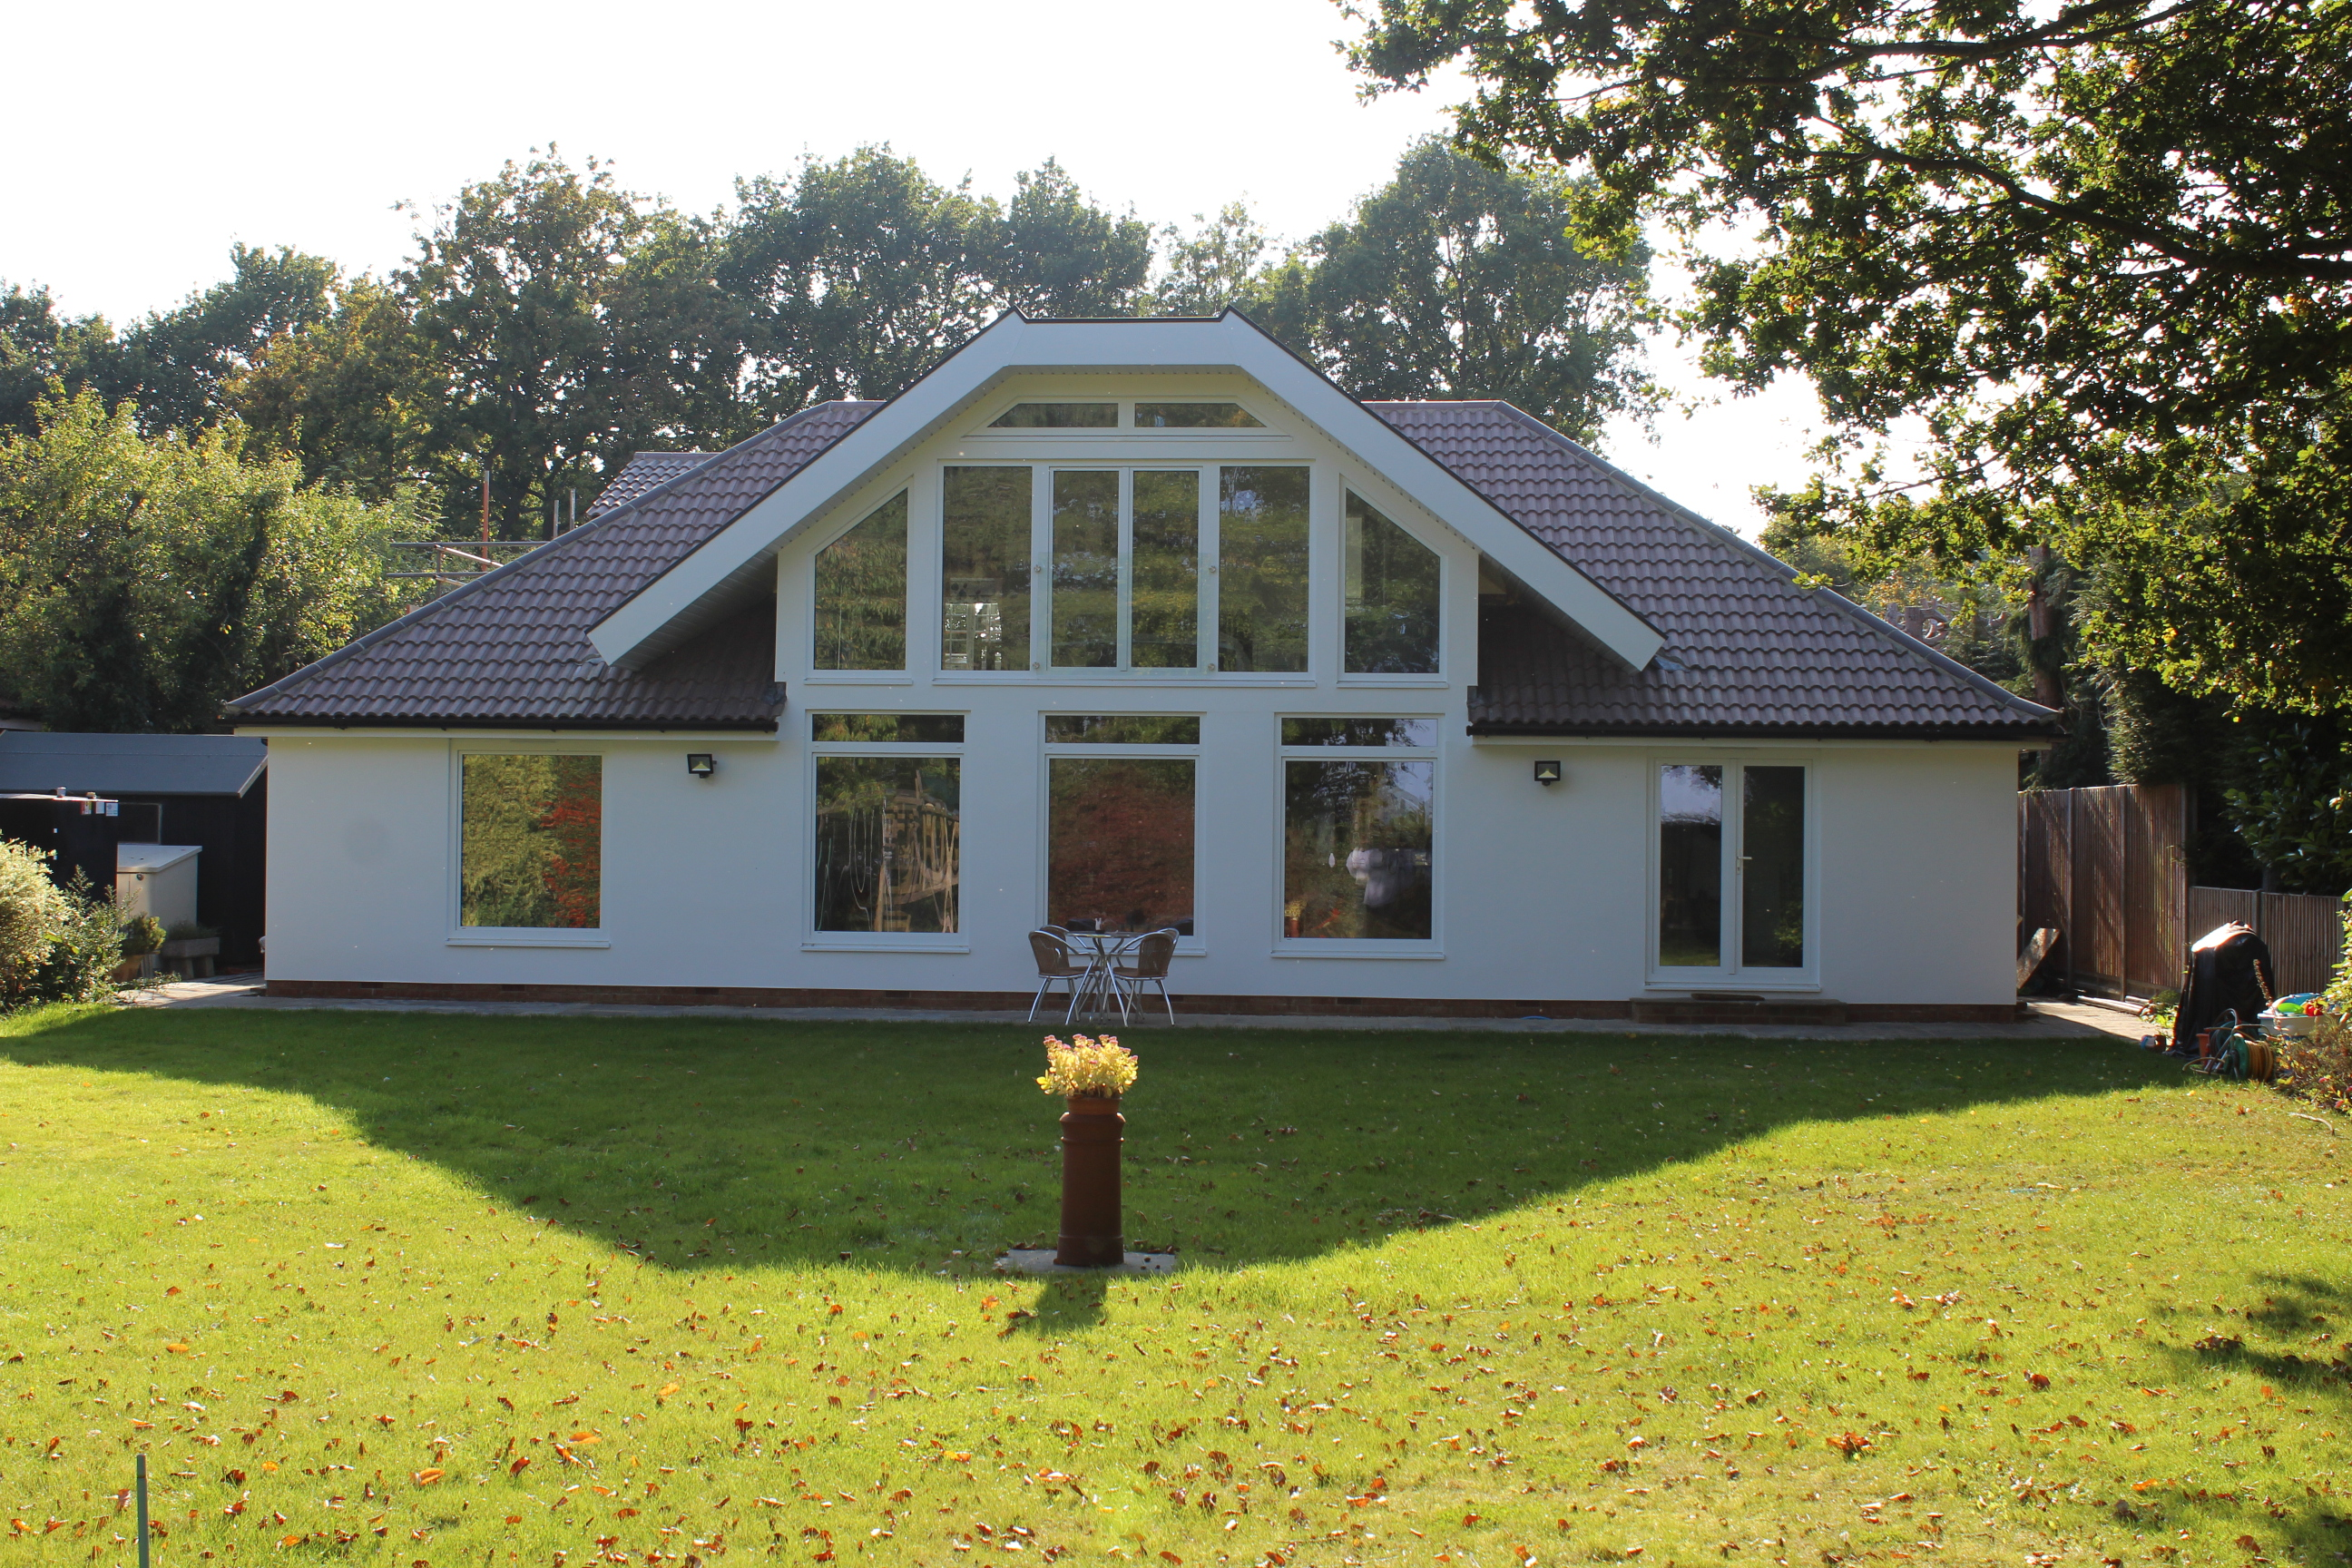 Large extension to bungalow